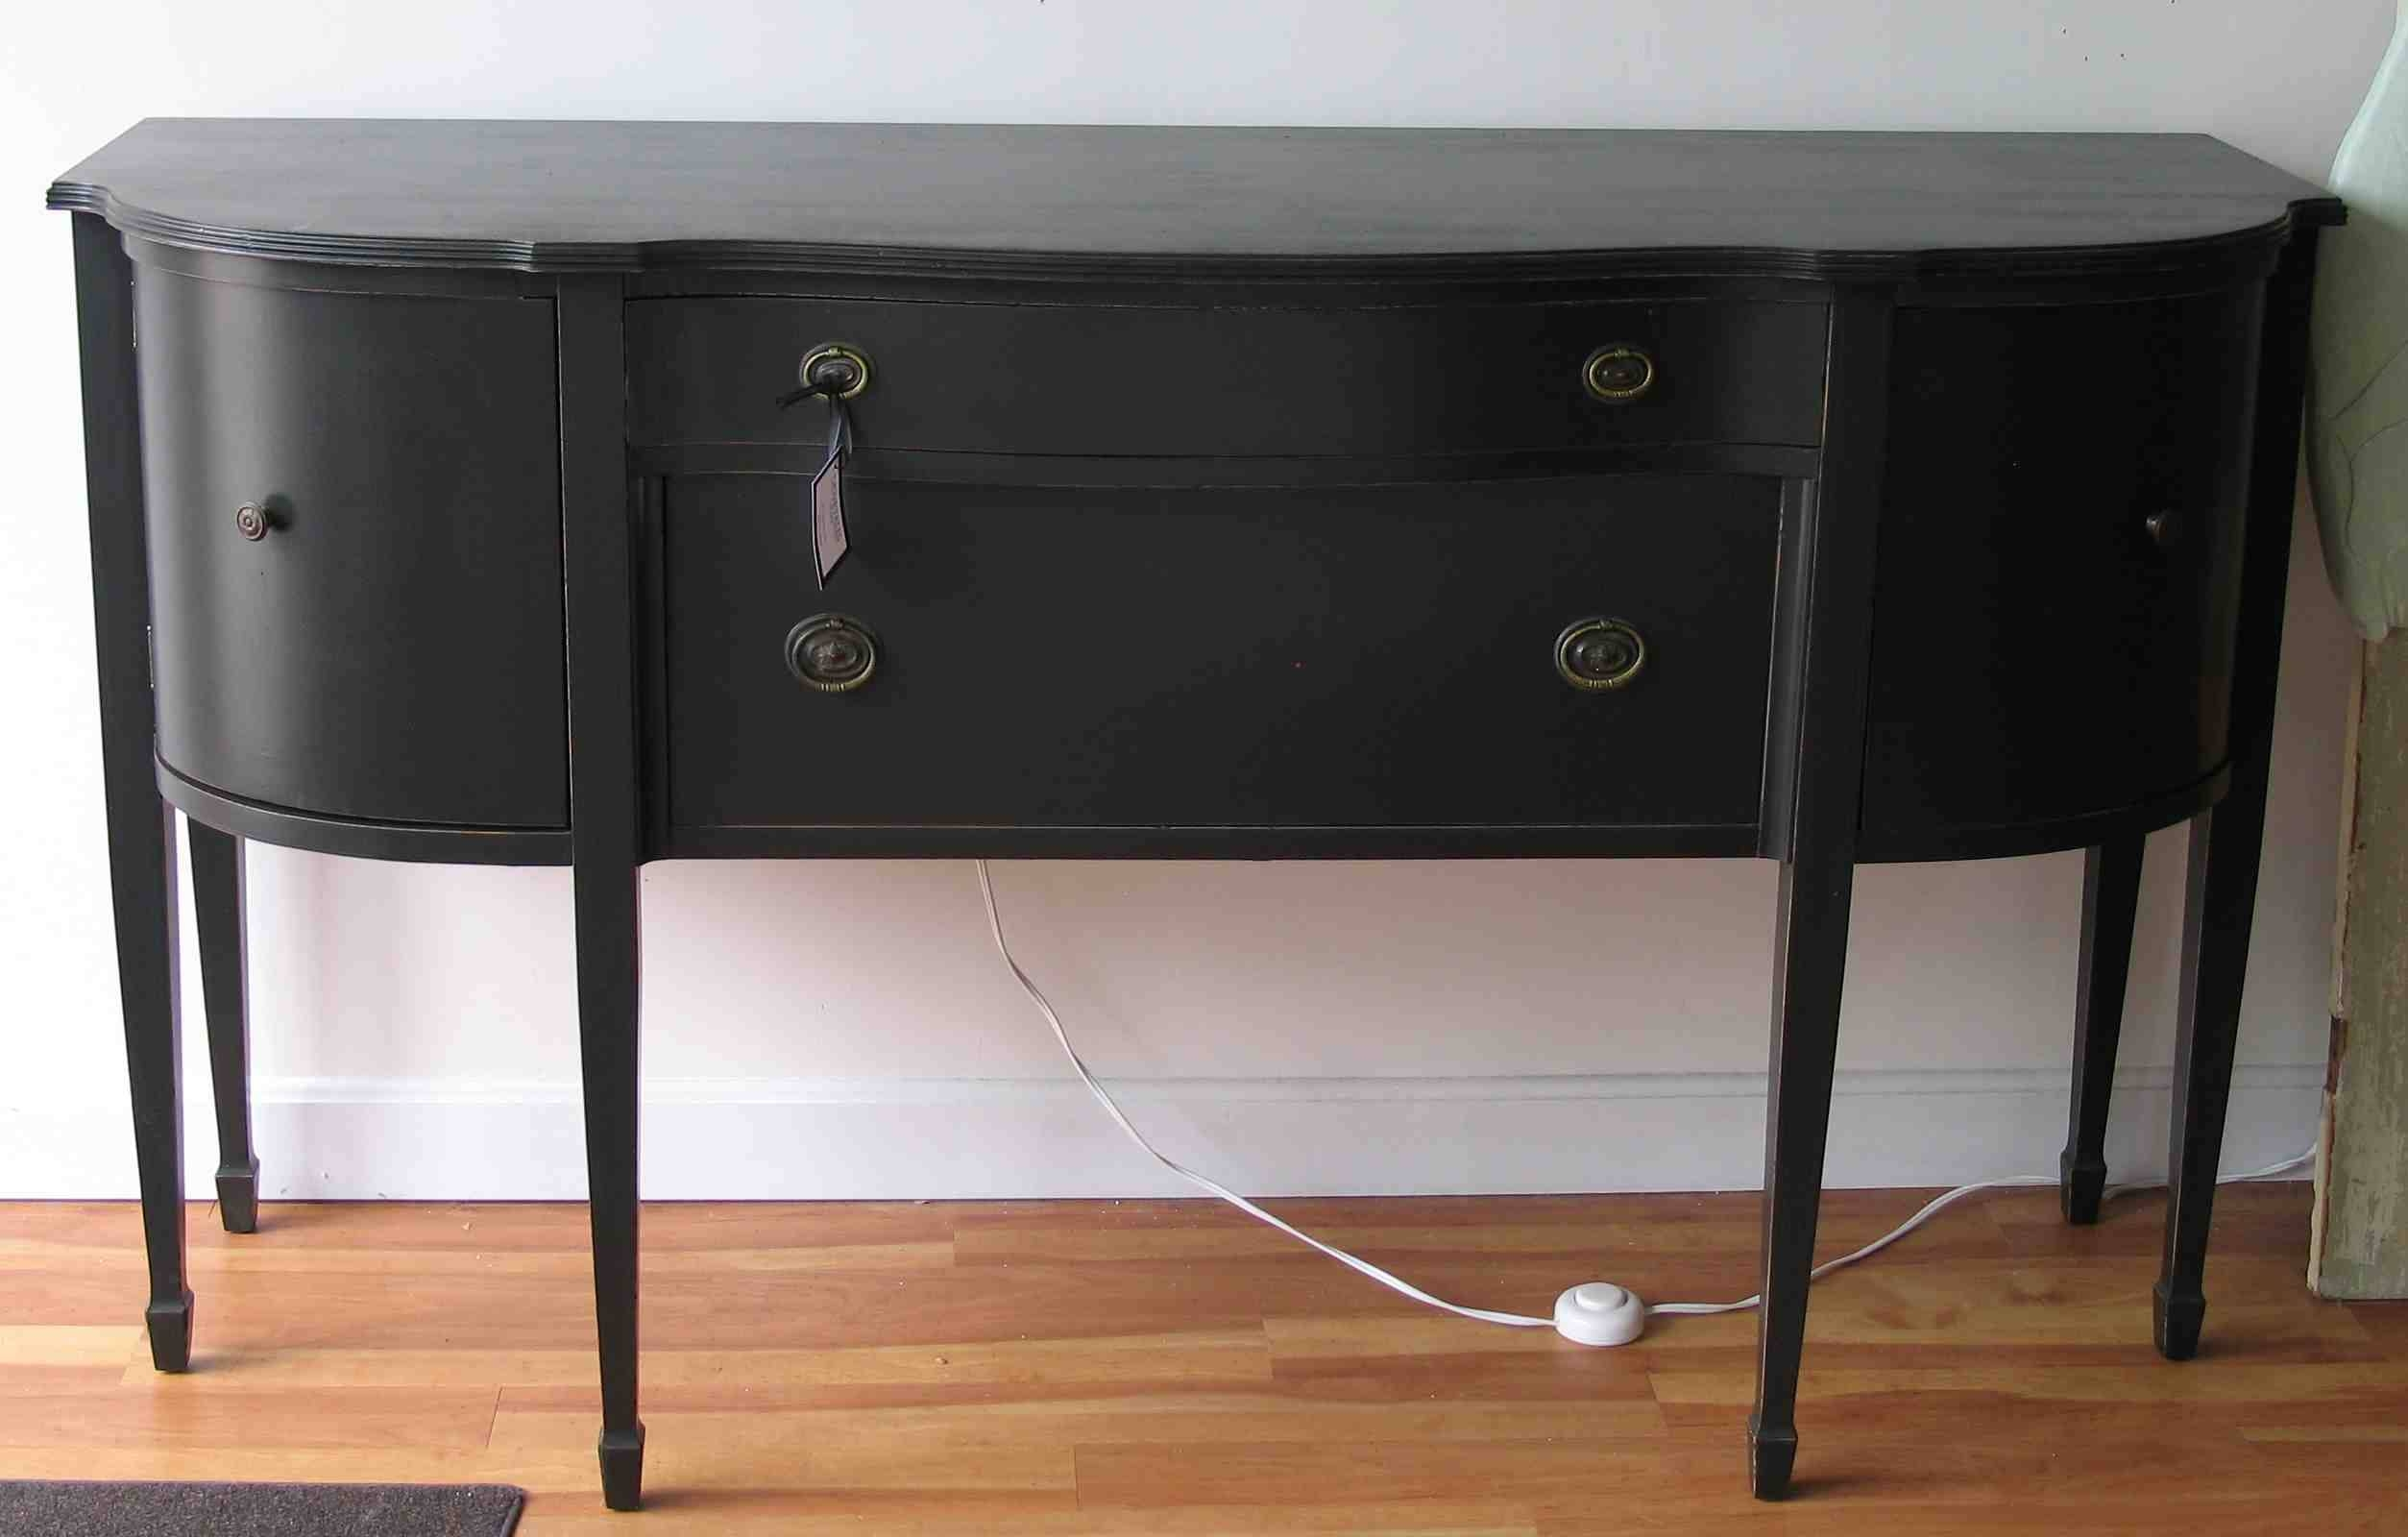 Semi Oval Black Wooden Table With Storage And Drawers Plus Long Inside Current Black Sideboard Cabinets (#10 of 15)